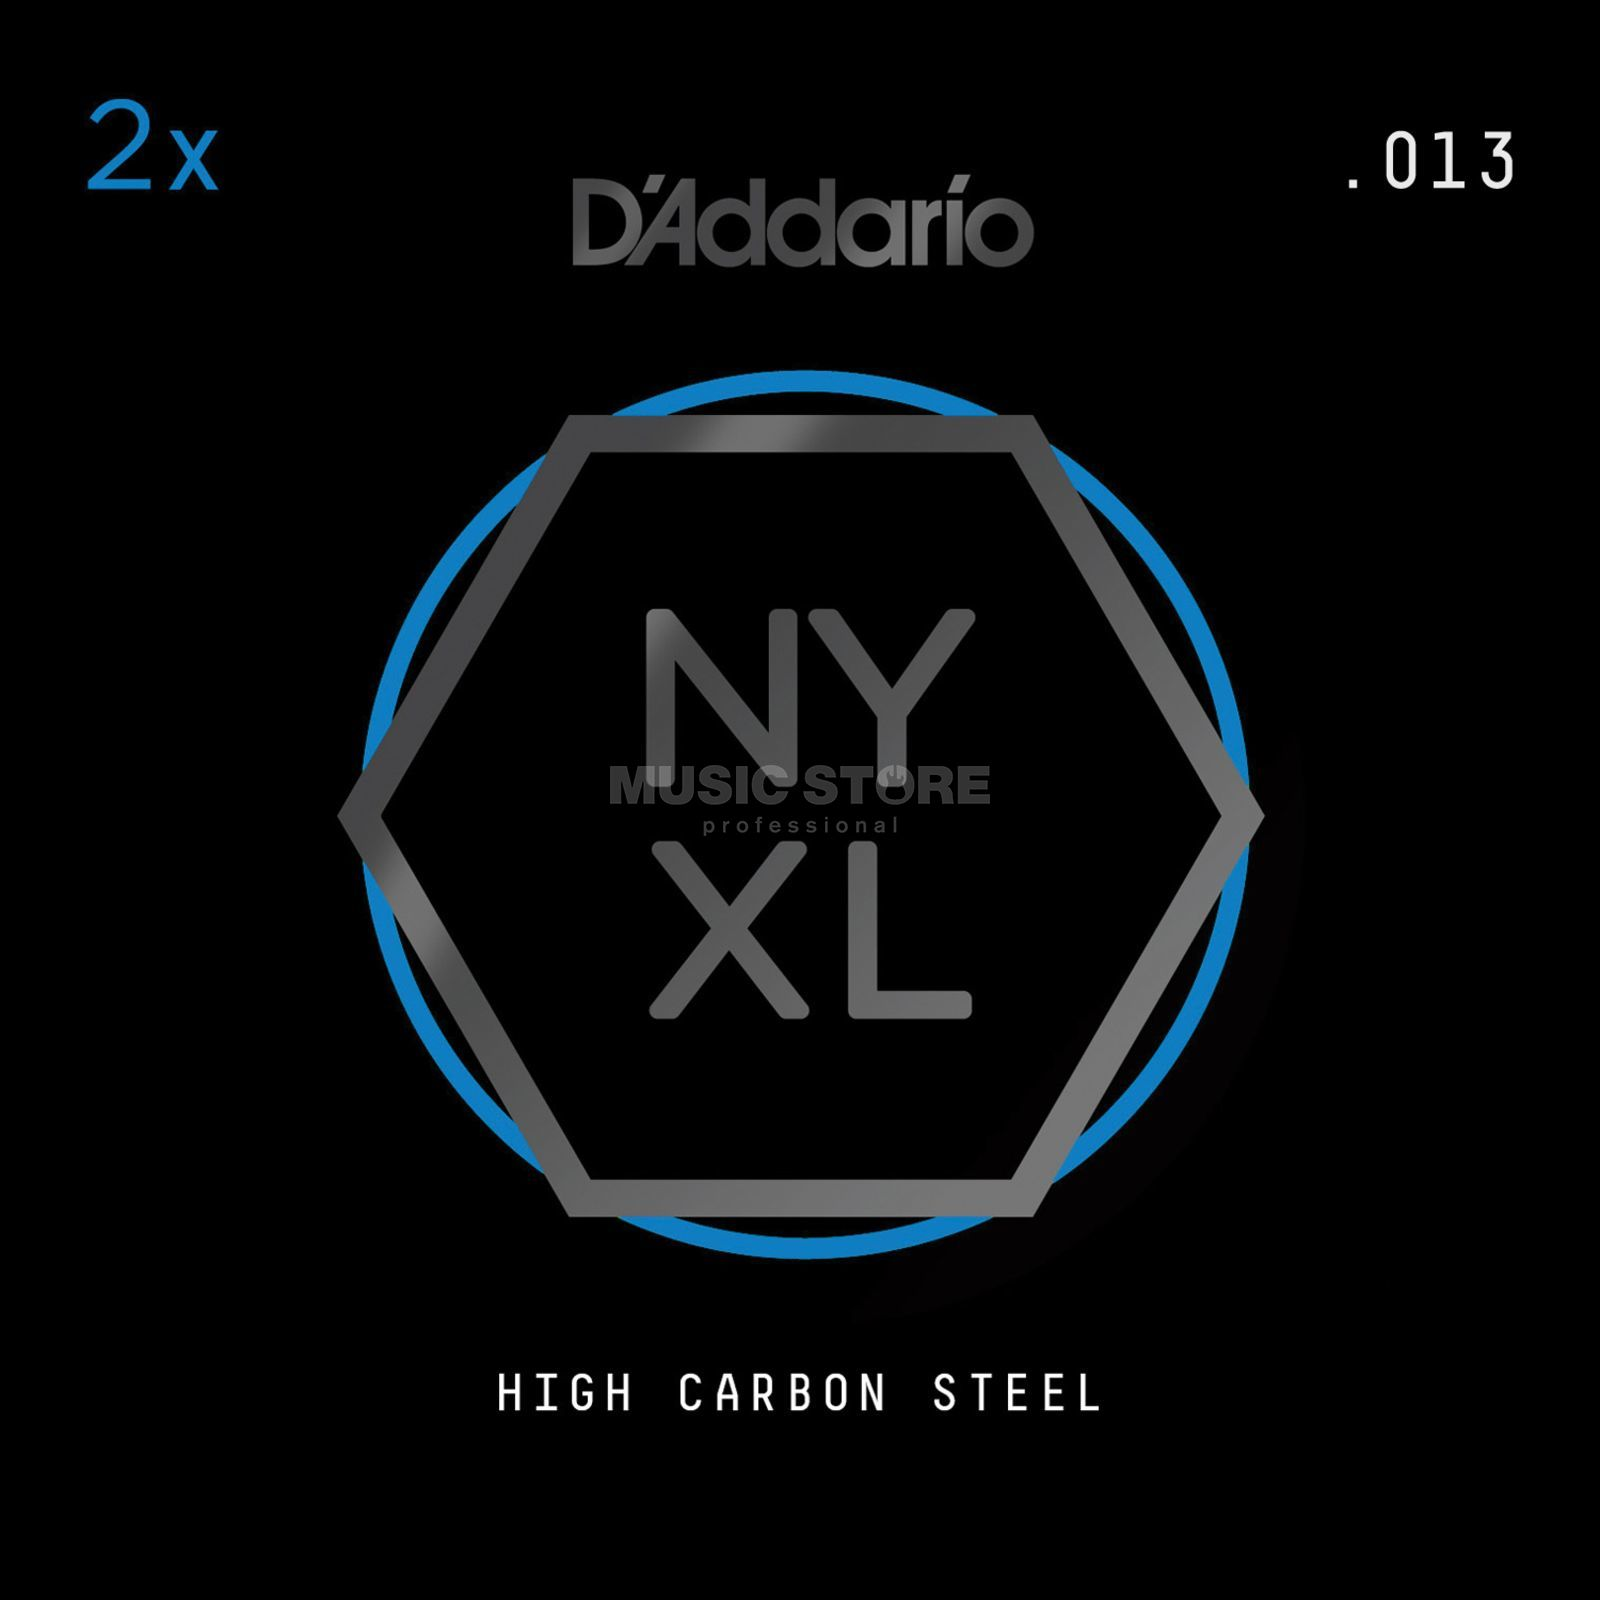 D'Addario NYPL013 Plain Single String 2-Pack - High Carbon Steel Produktbillede